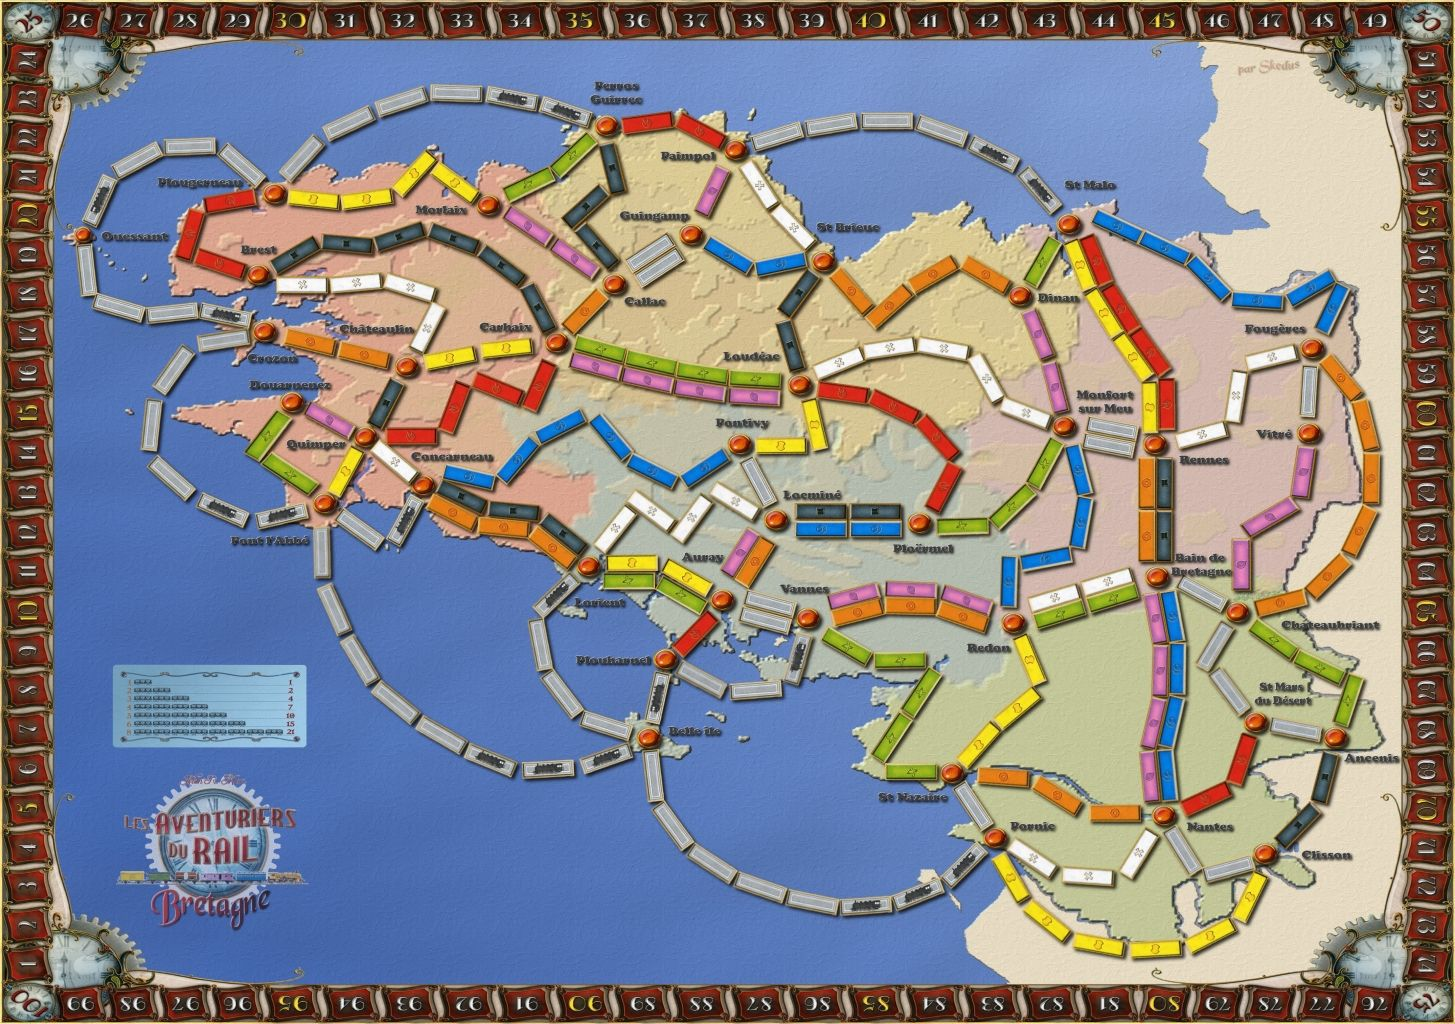 Bretagne (fan expansion for Ticket to Ride)